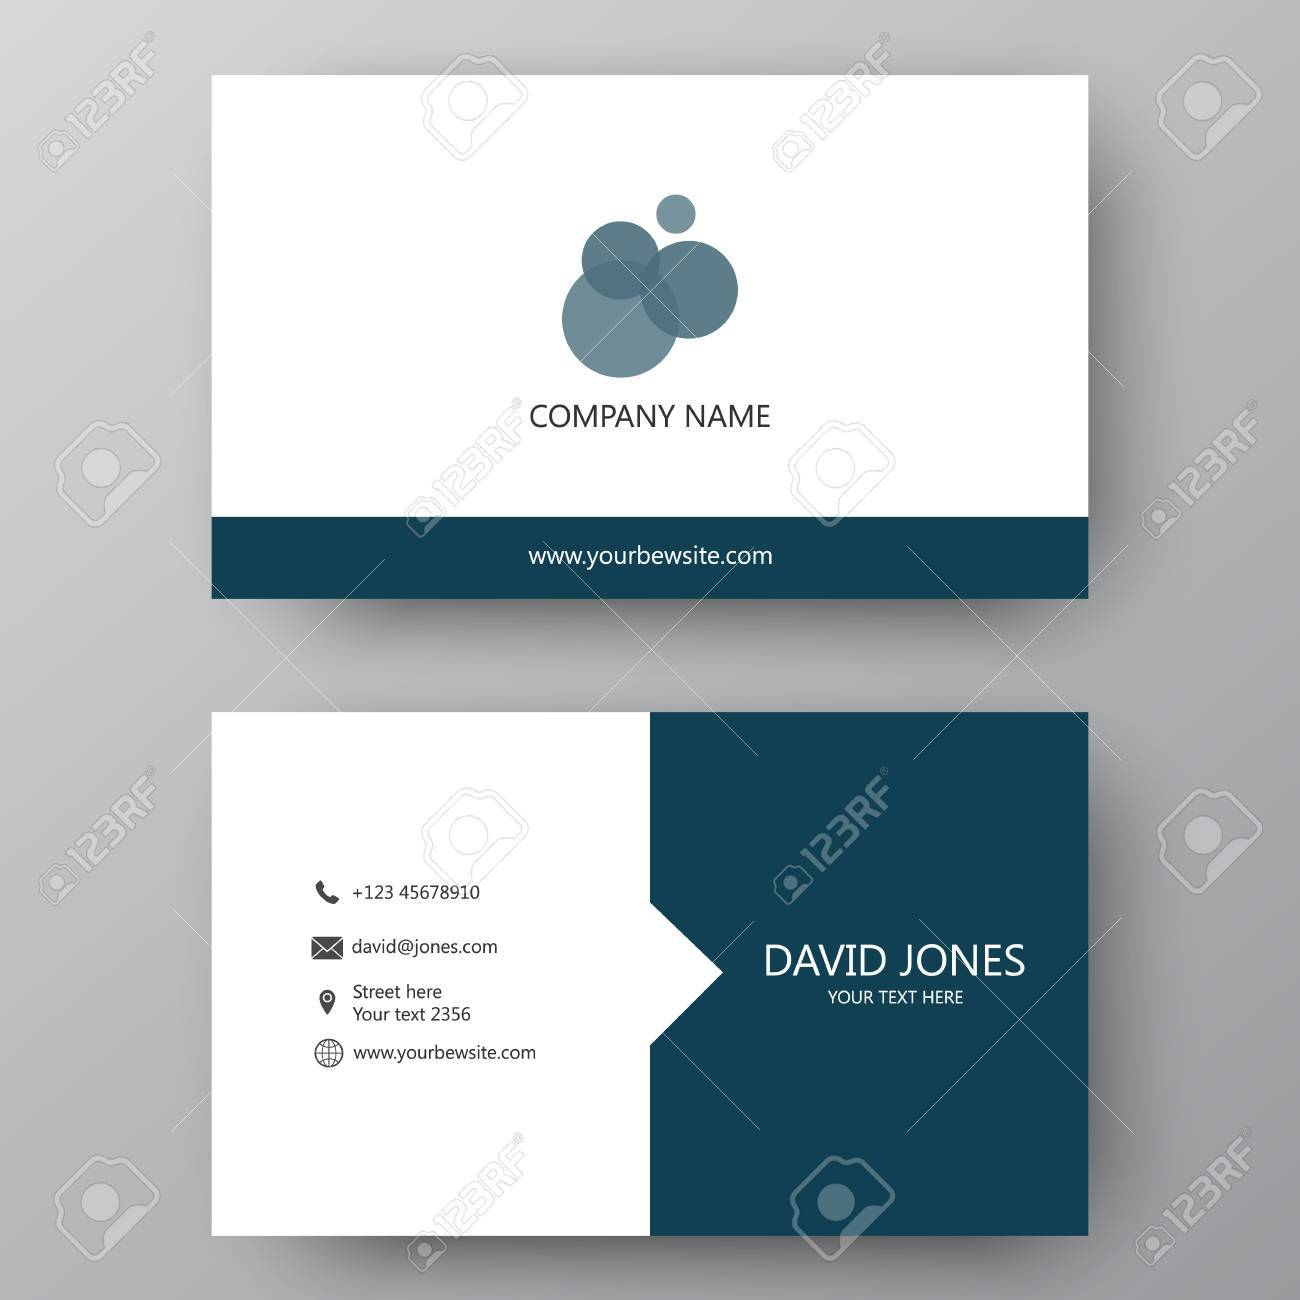 Vector business card template visiting card for business and vector vector business card template visiting card for business and personal use modern presentation card with company logo vector illustration design accmission Images